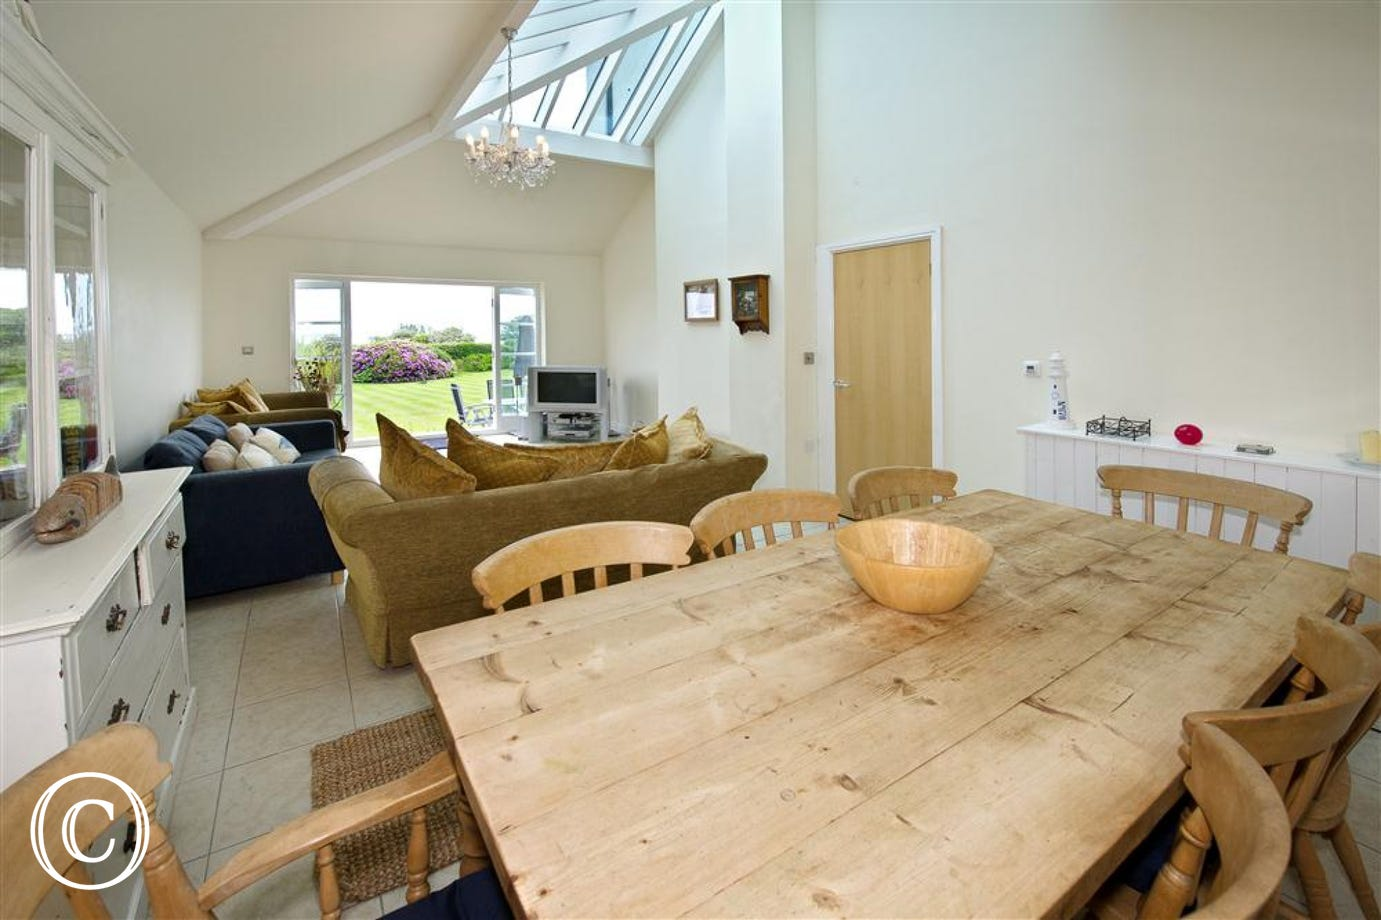 Conservatory to the rear of the property with sofa, double sofabed, and dining table & chairs